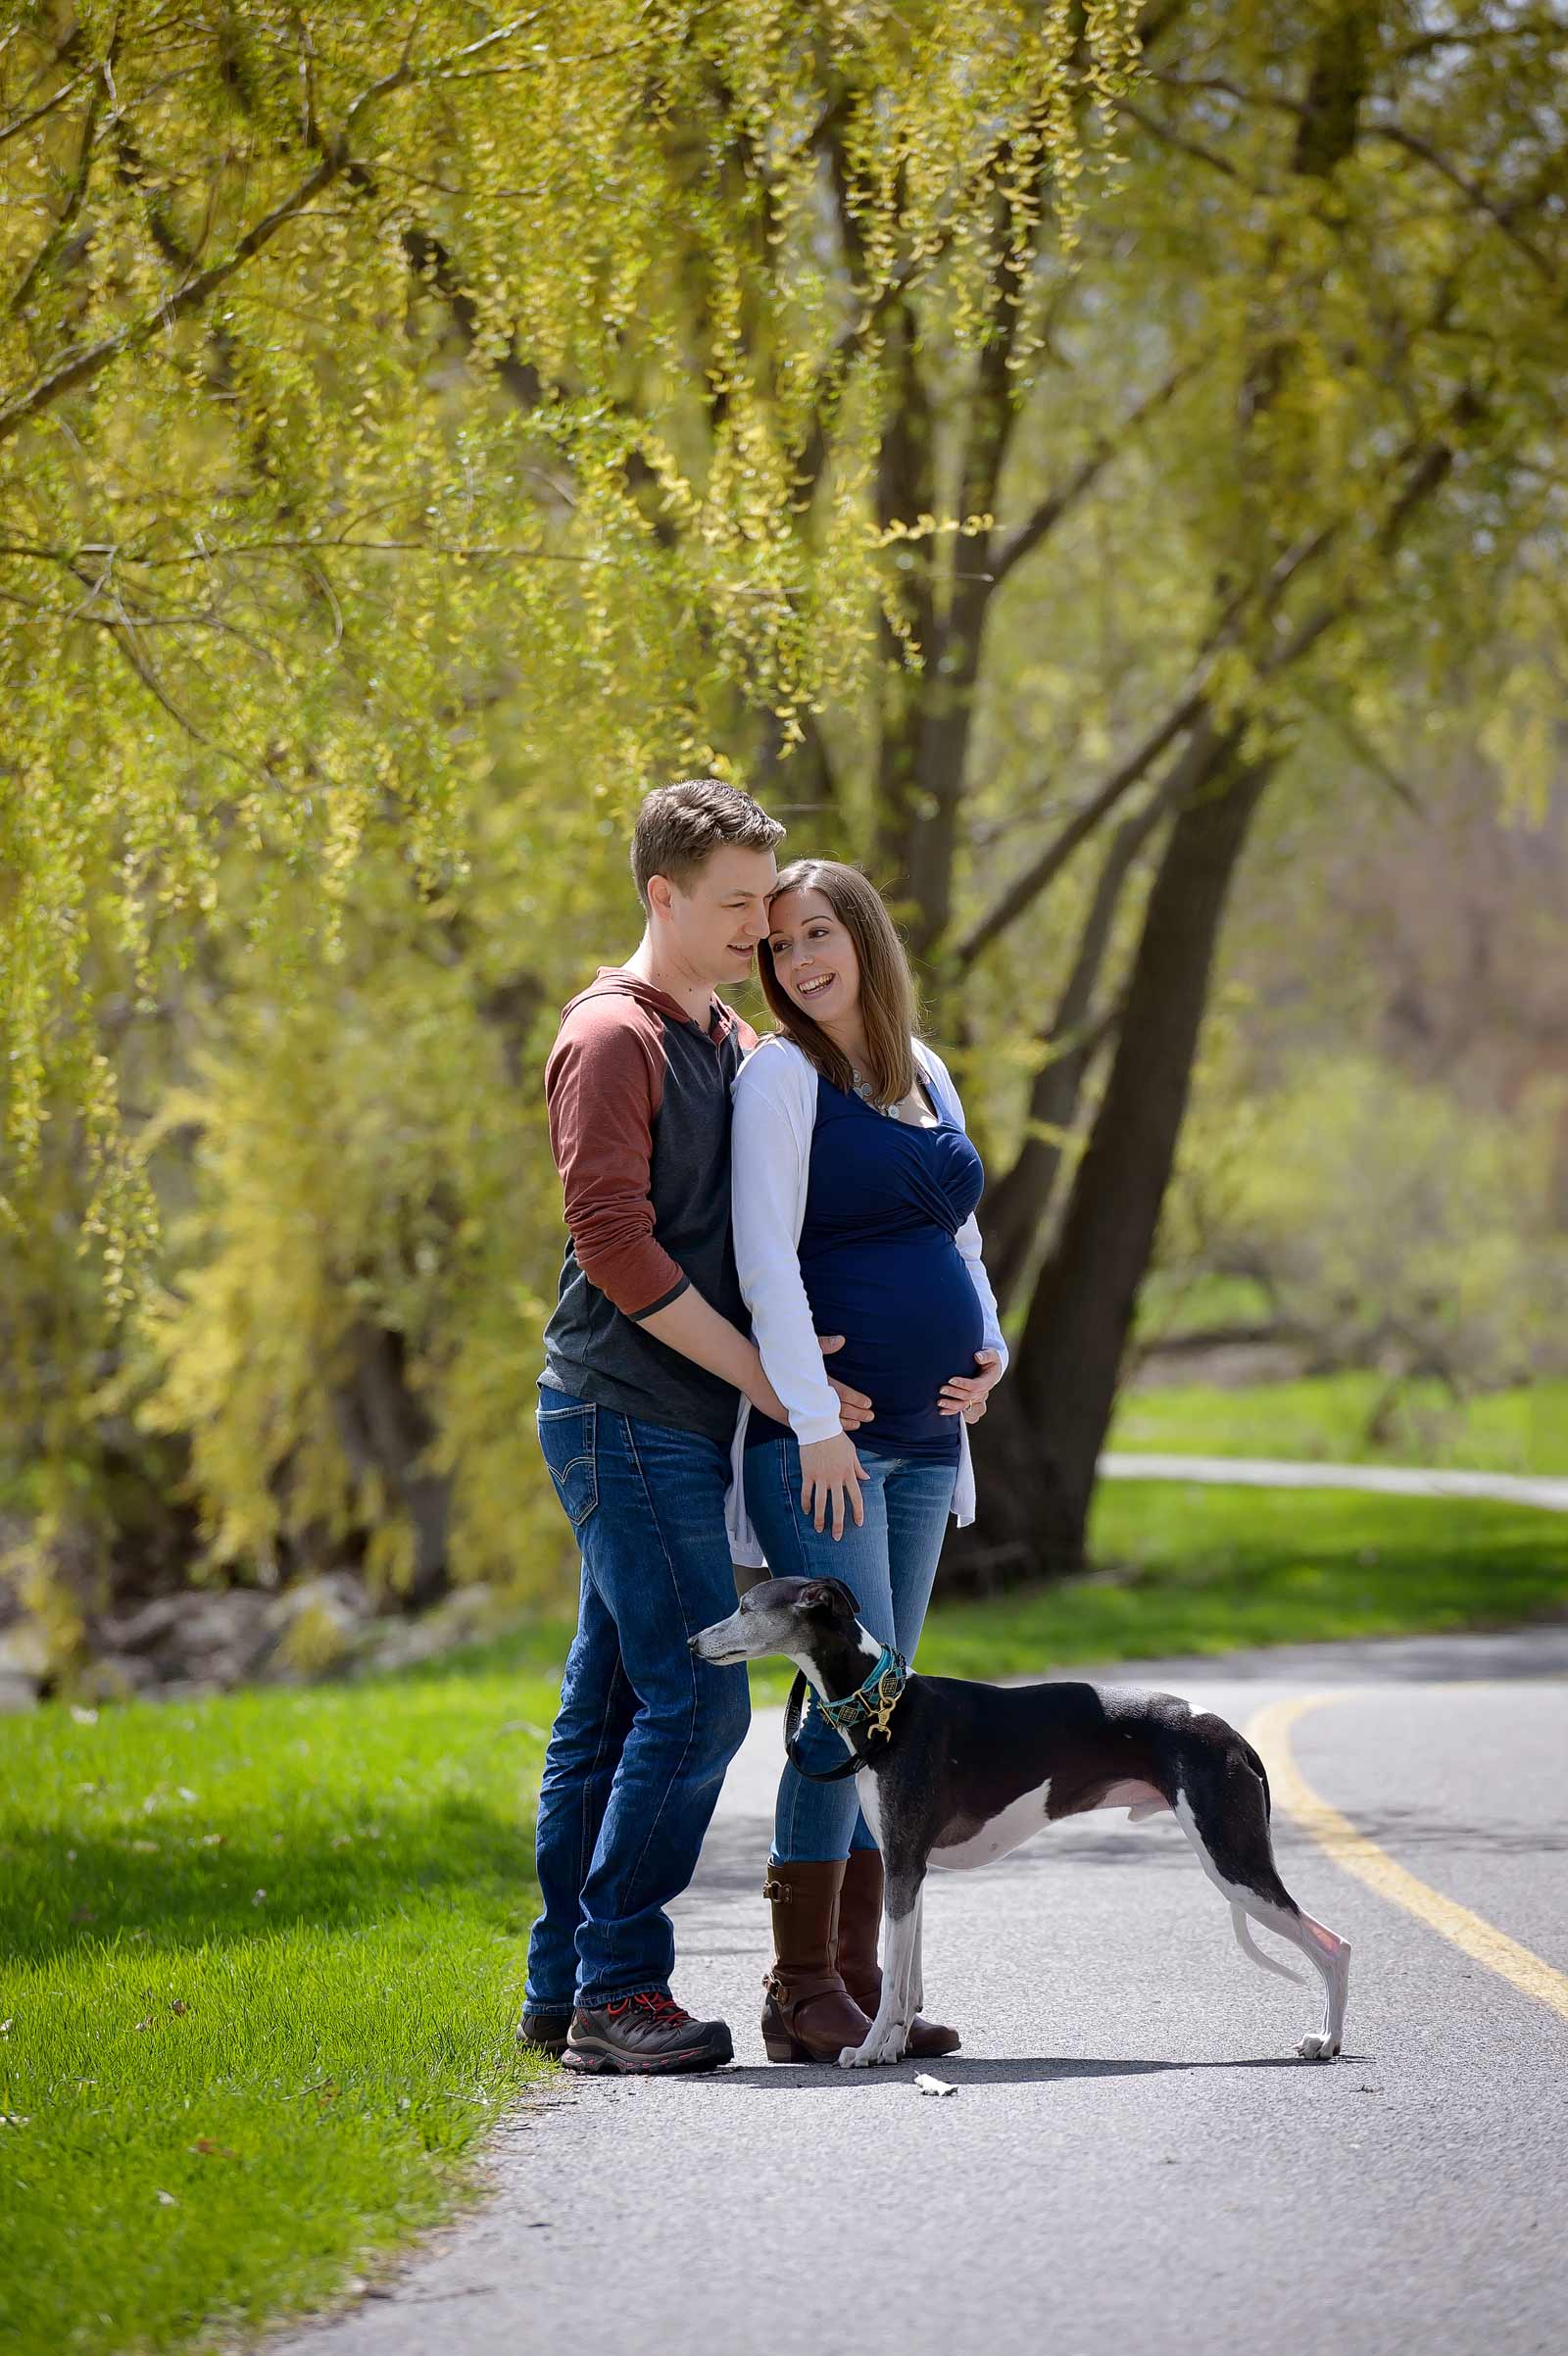 Maternity session with a dog standing on a pathway in Ottawa at the Arboretum